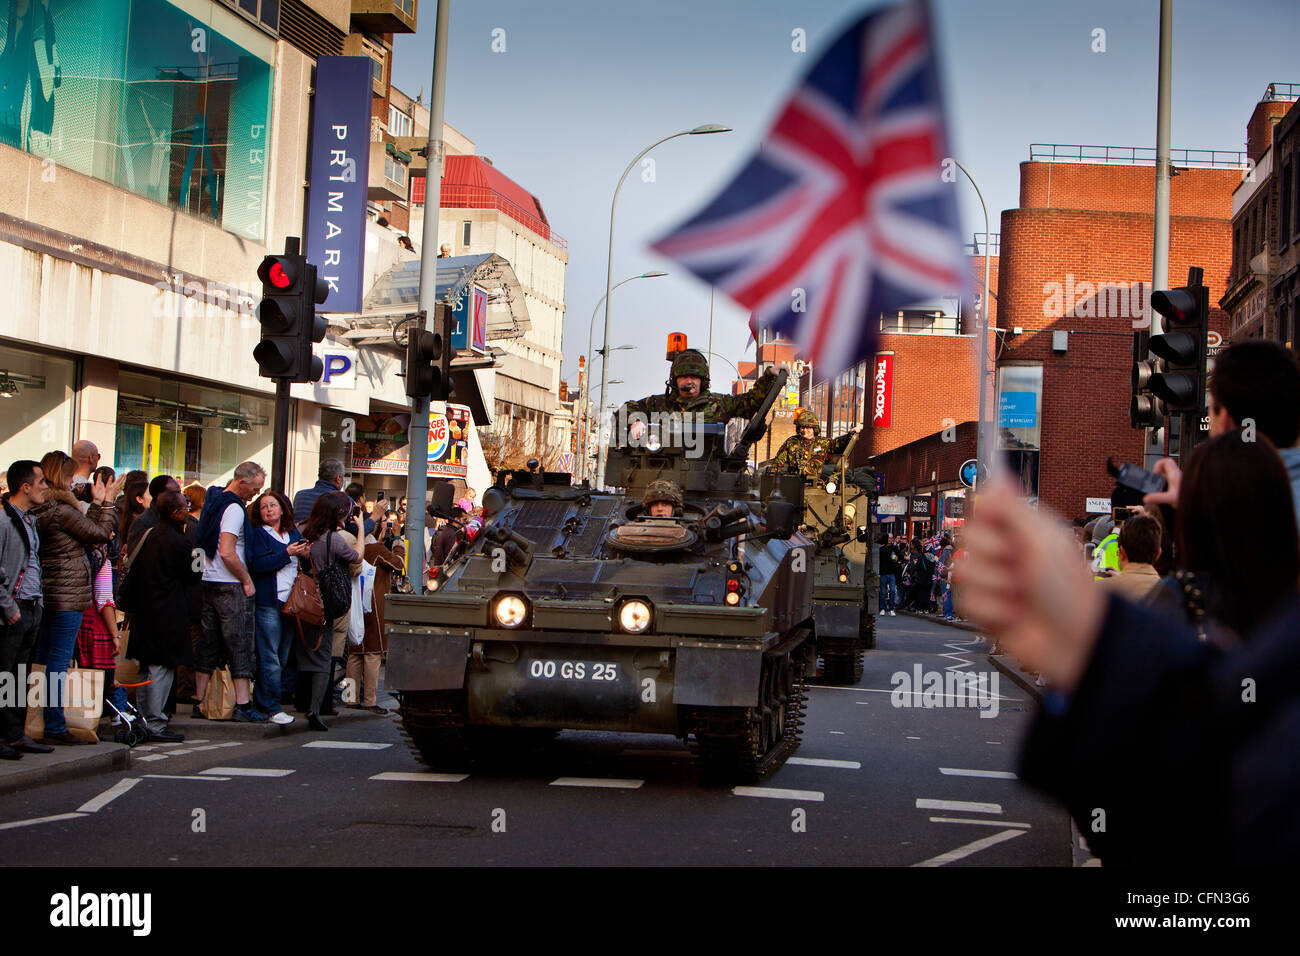 Troops in armoured vehicles drive past High street shops during a Royal Yeomanry parade, spectators wave union jack - Stock Image